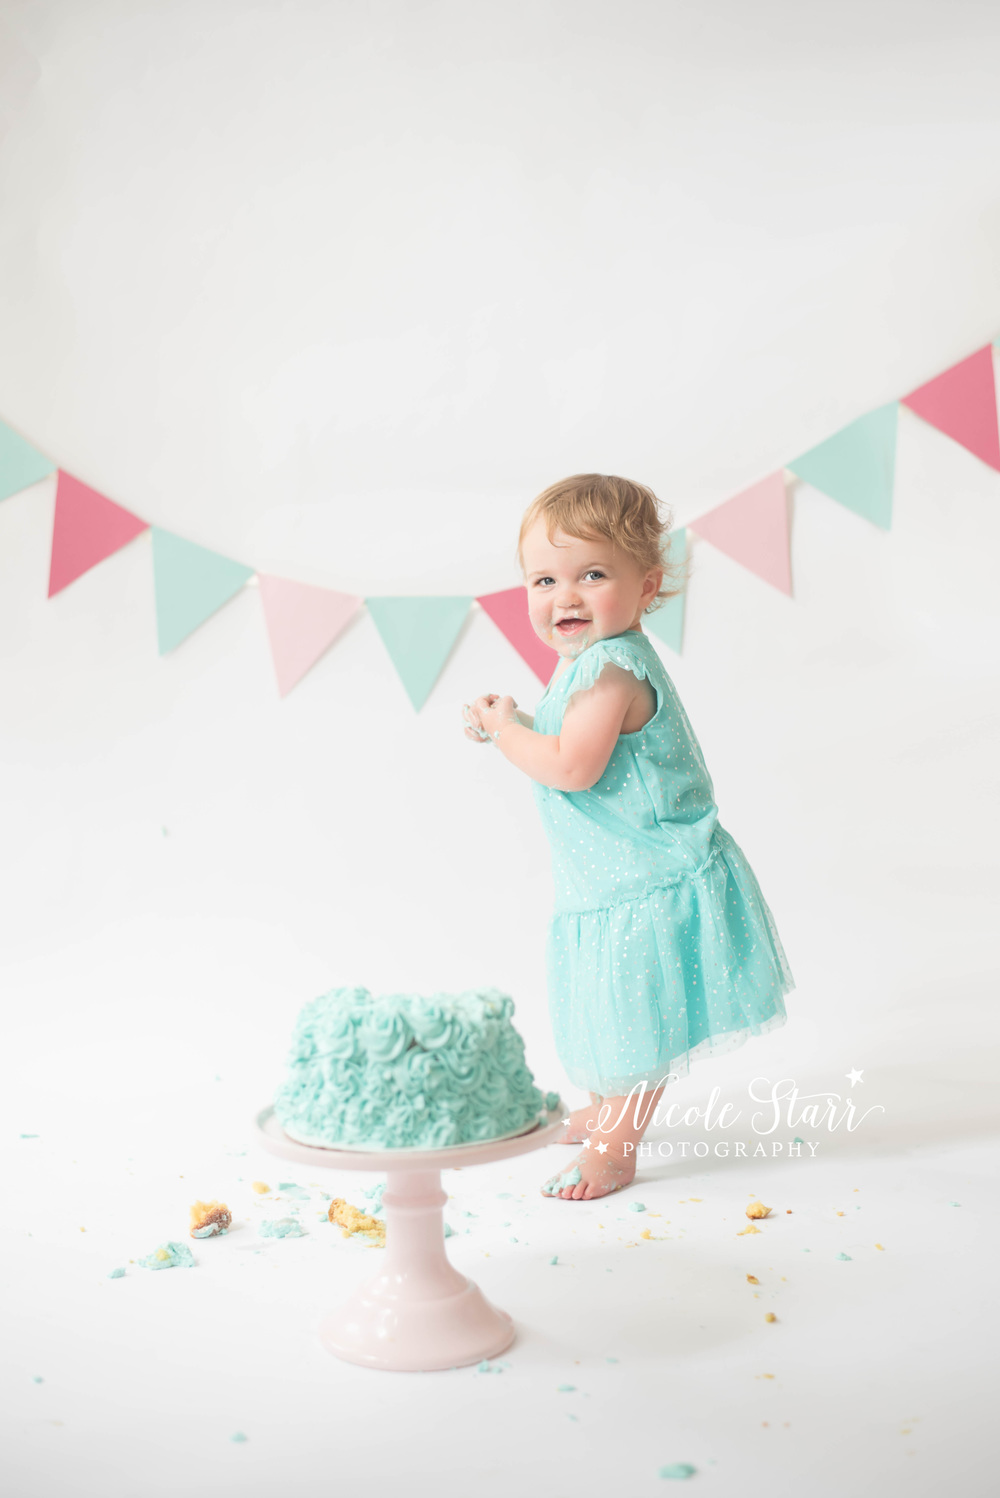 albany cake smash photographer 4.jpg